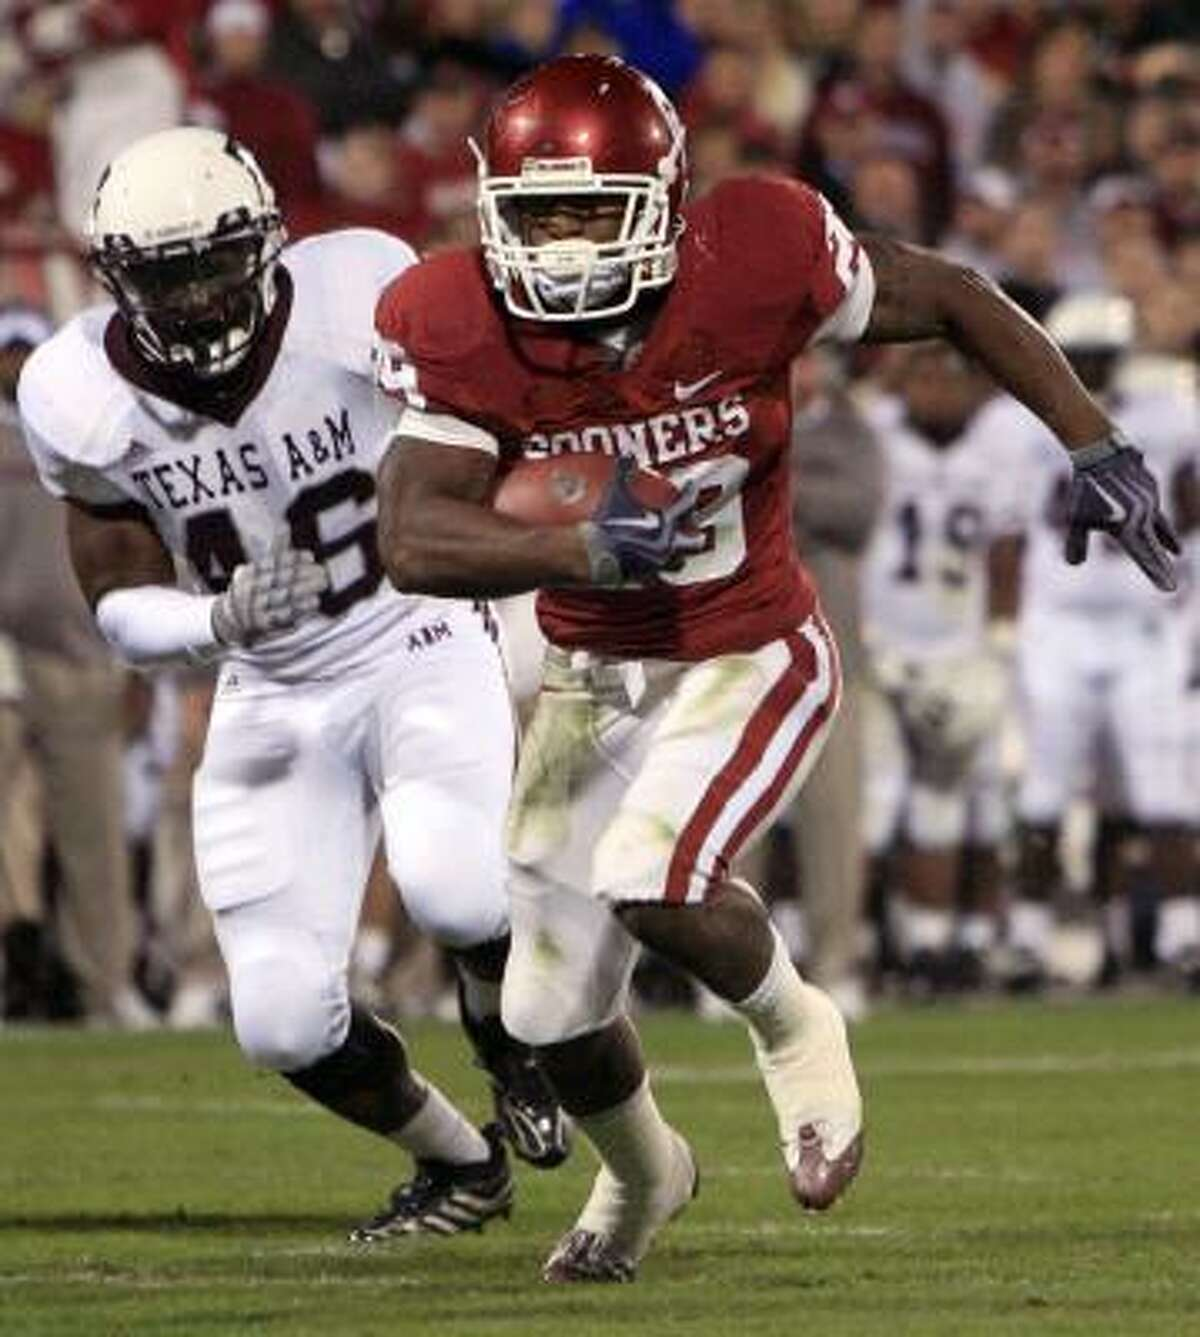 Oklahoma running back Chris Brown, right, rushes for six yards for a touchdown as Texas A&M defender Matt Featherston, left, trails the play in the second quarter of their matchup in Norman, Okla., Saturday.